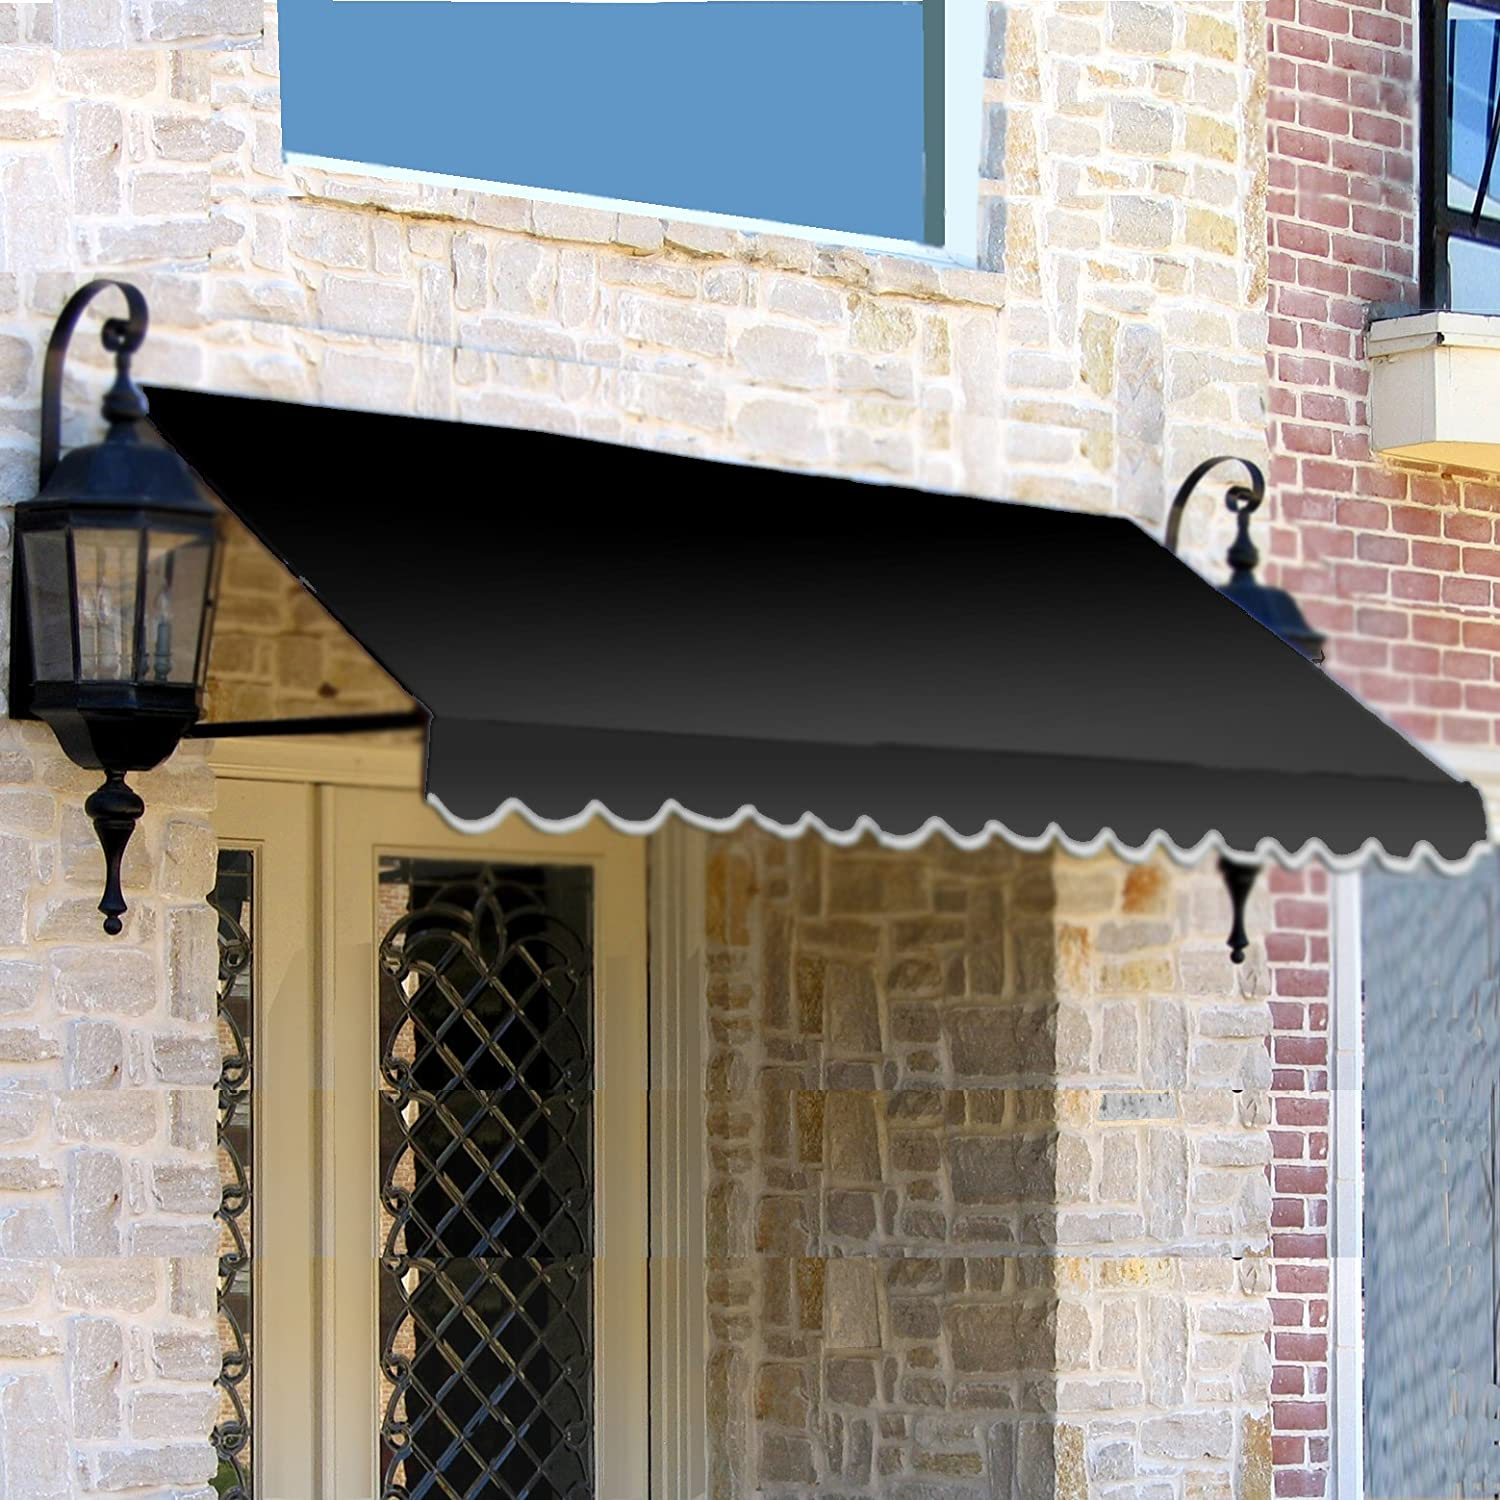 amazon com awntech 3 feet dallas retro awning for low eaves 18